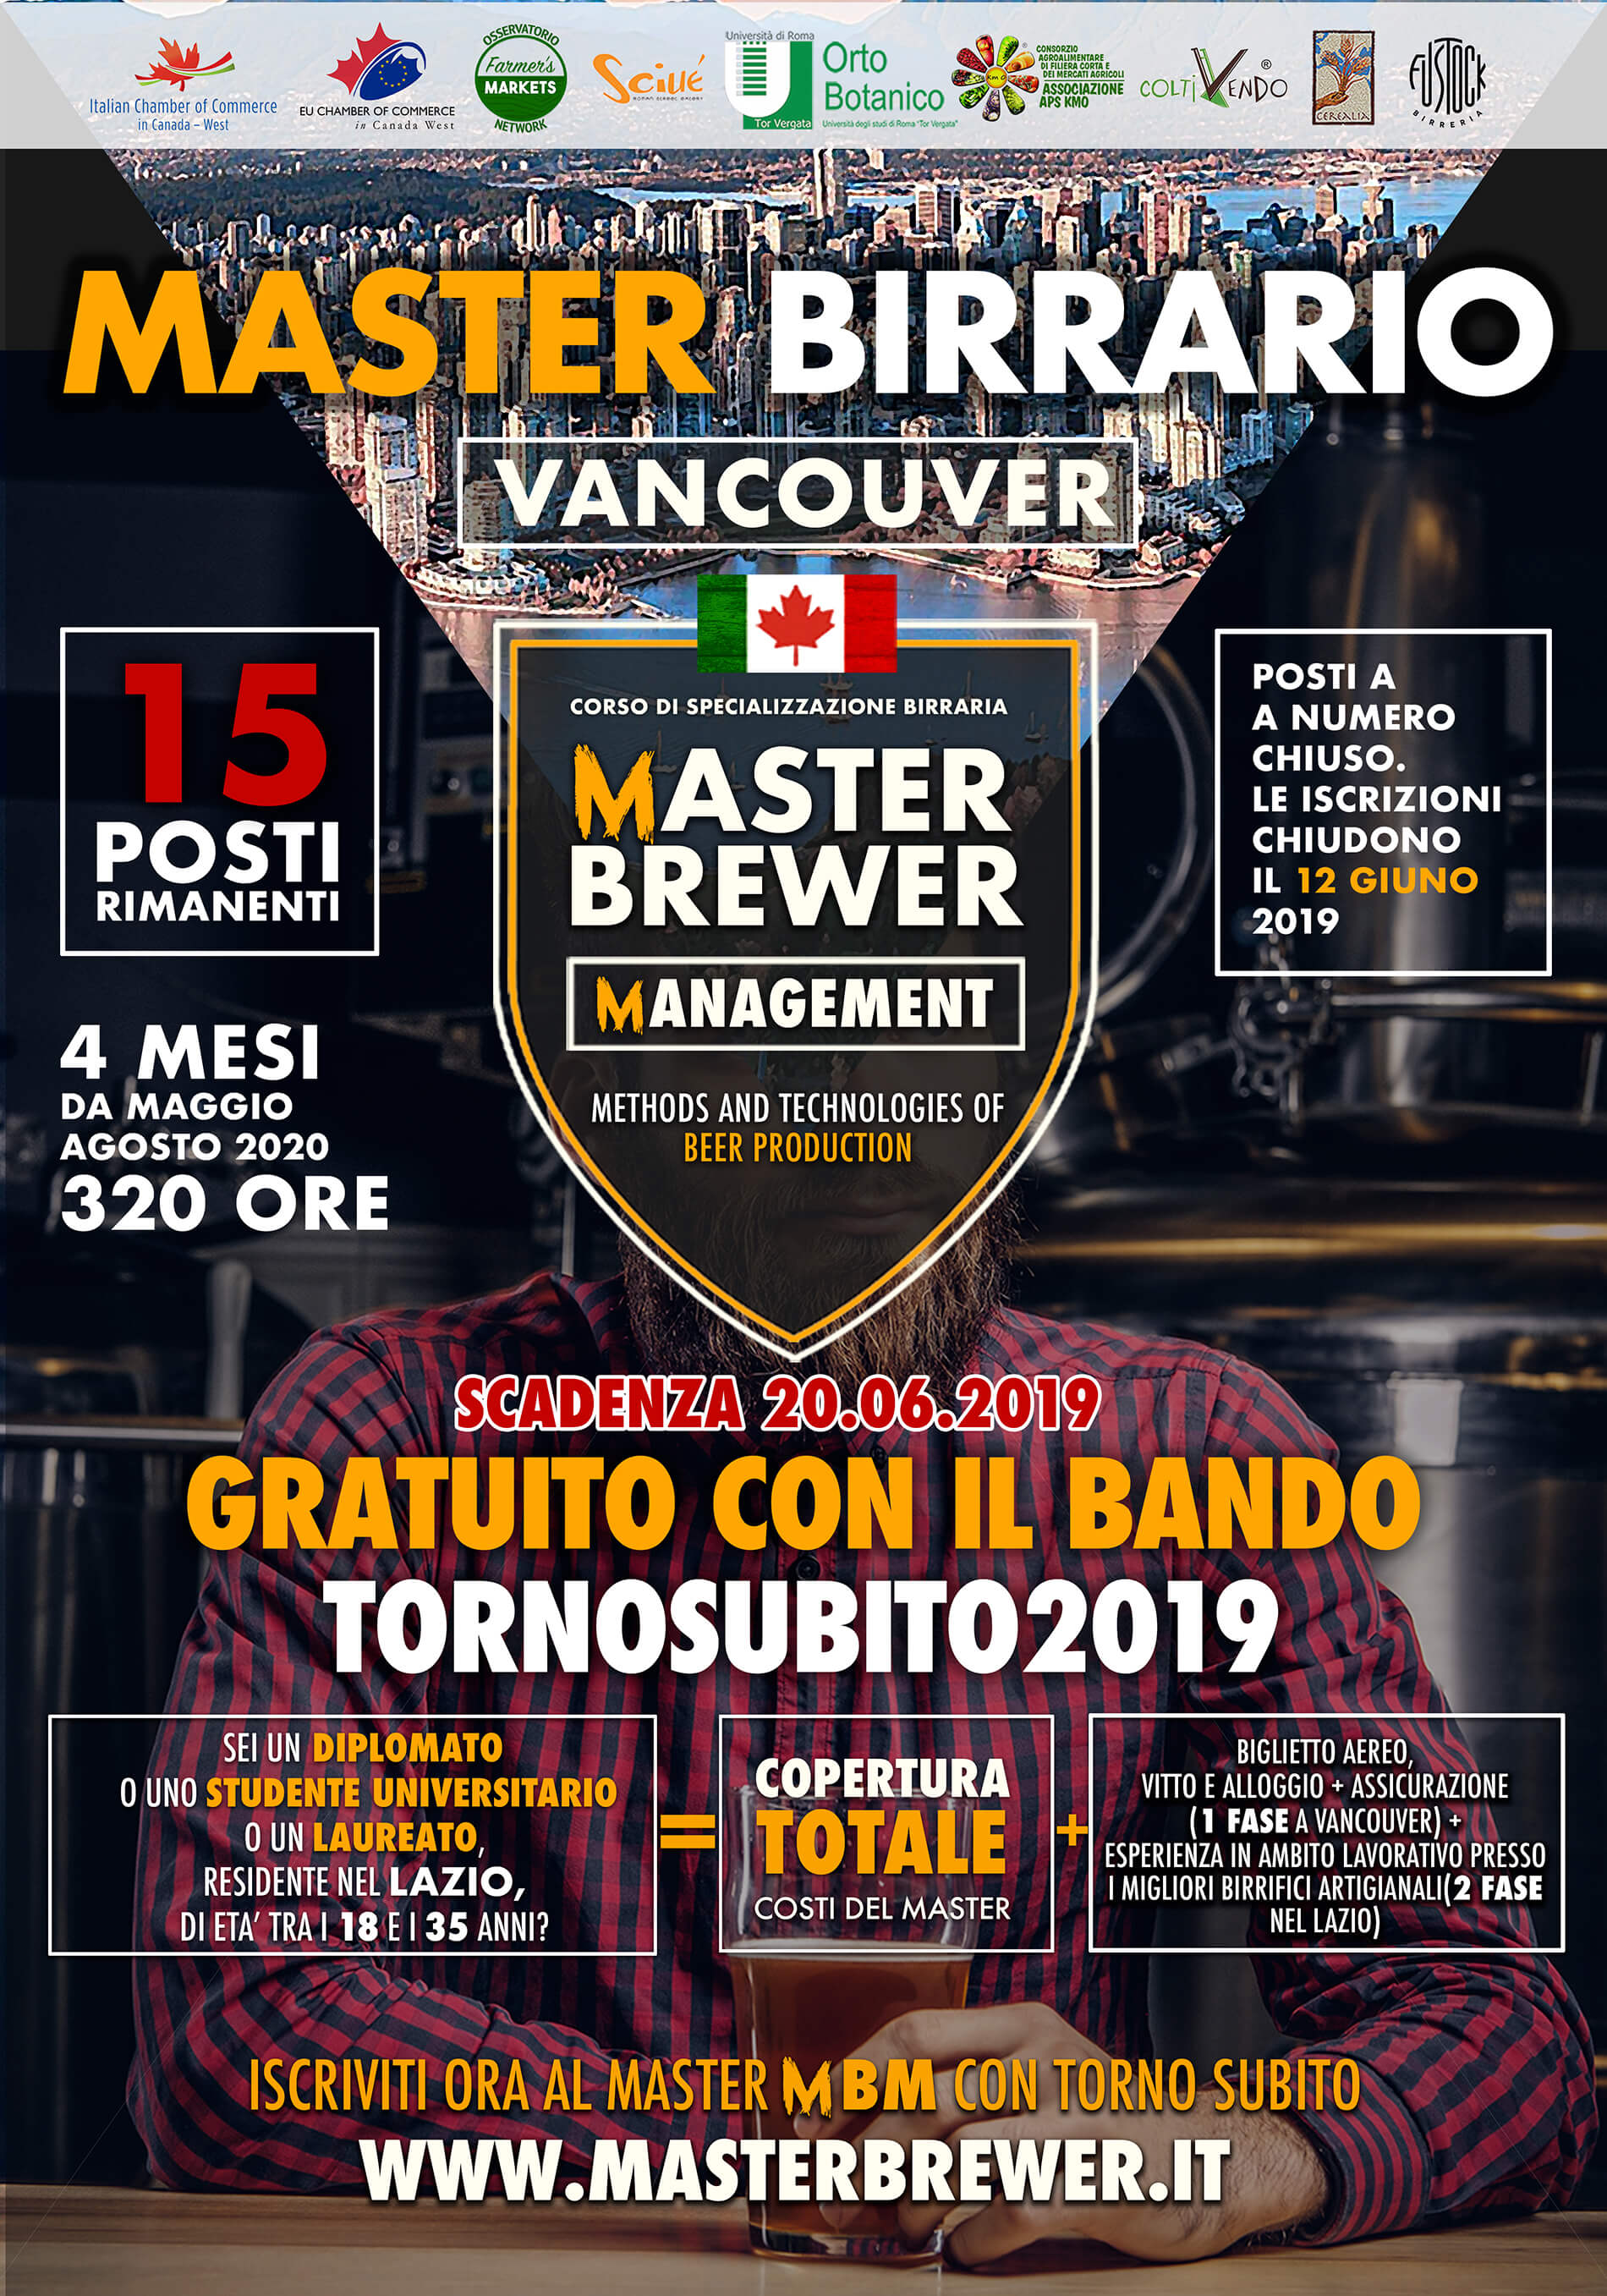 MBM_Master Brewer Management